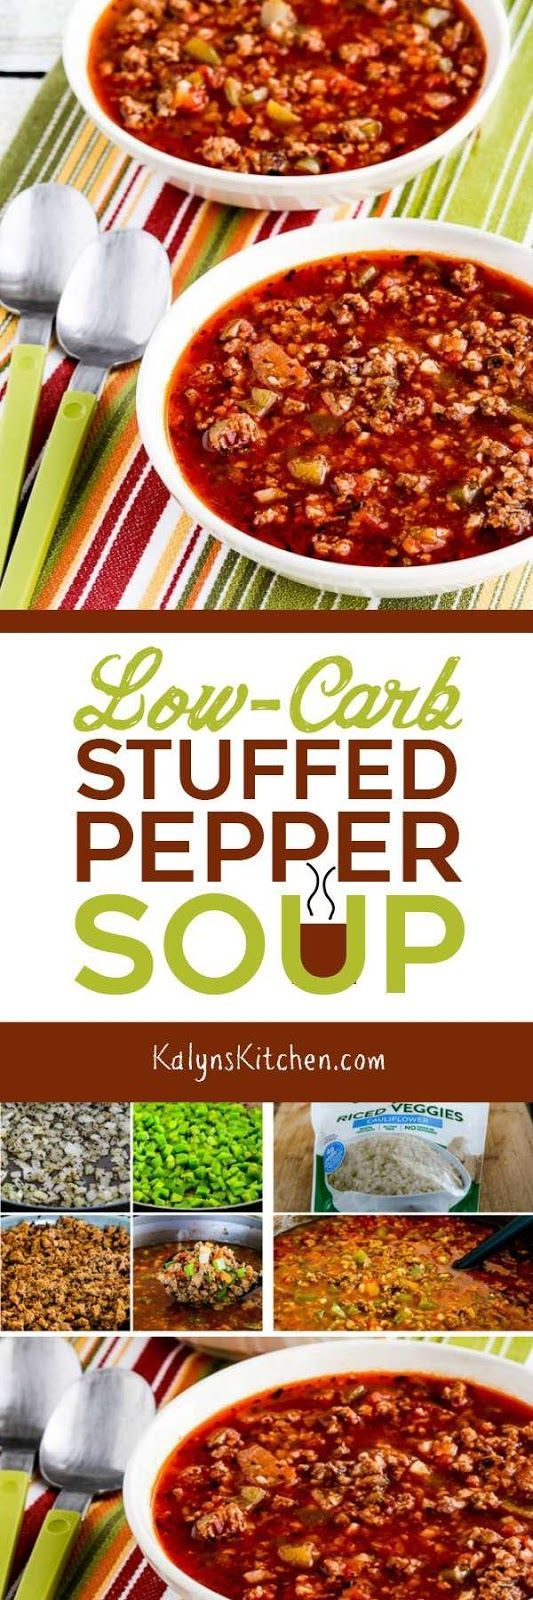 If you like the flavors of stuffed peppers but don't want the carbs, you'll love this Low-Carb Stuffed Pepper Soup. And this delicious soup is also Keto, low-glycemic, gluten-free, and South Beach Diet Phase One.  [found on KalynsKitchen.com] #StuffedPepperSoup #SoupRecipe #LowCarb #Keto #LowGlycemic #GlutenFree #SouthBeachDiet